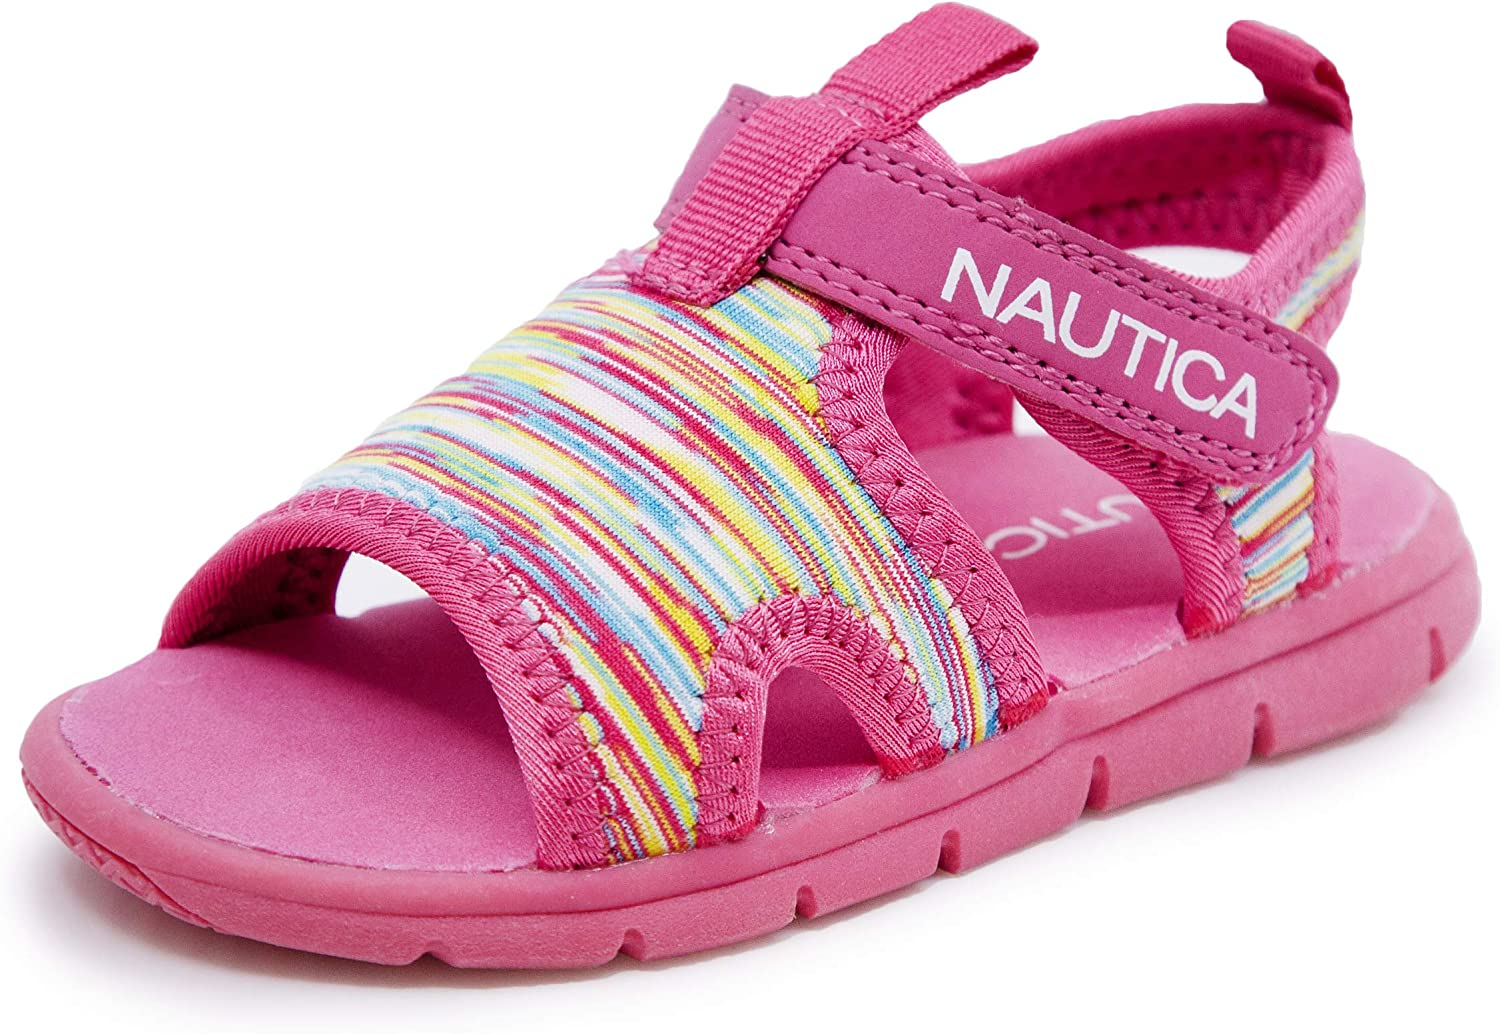 Nautica Max 41% OFF Kids Sports Sandals - Water Toe Athletic Summ Open Shoes Max 73% OFF